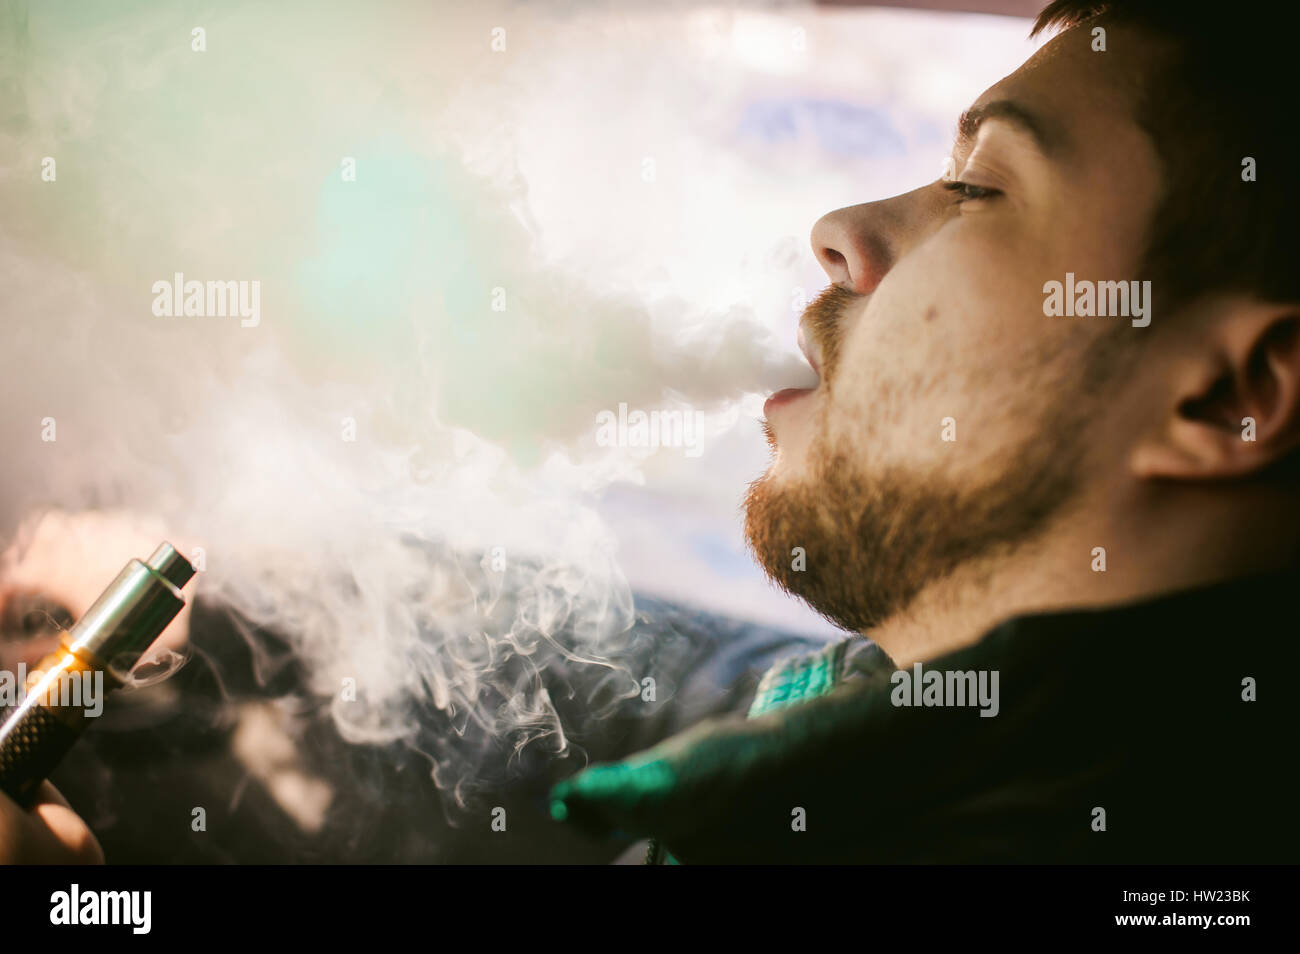 young vaper man with beard vaping mechanical mod. Guy smokes an electronic cigarette by blowing a smoke vapor - Stock Image